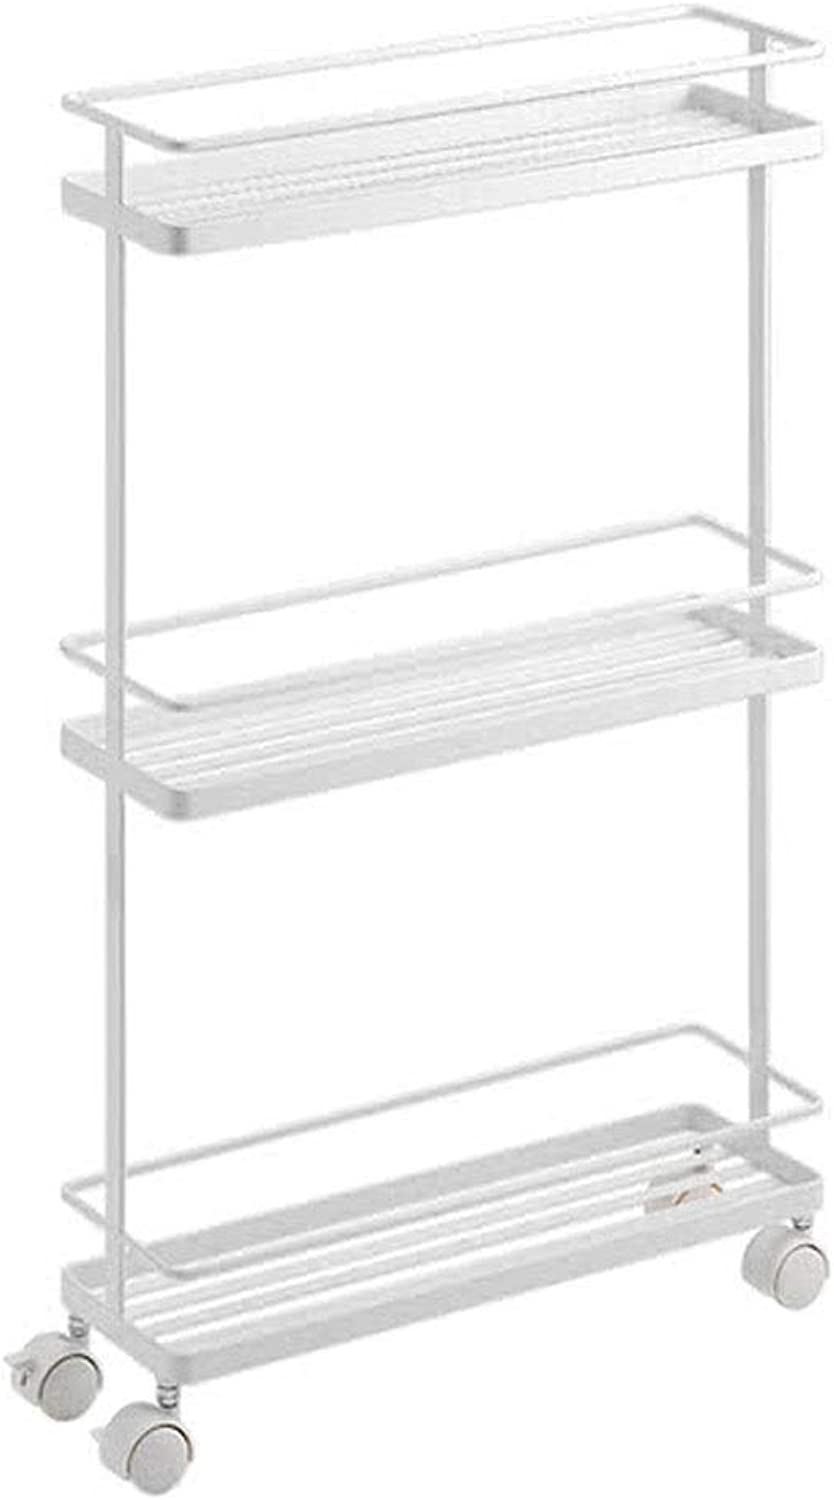 Slot Storage Cart Kitchen Bathroom with Roller Shelf Multi-Function Three-Layer Metal White Unit Cart with Brake Cabinet